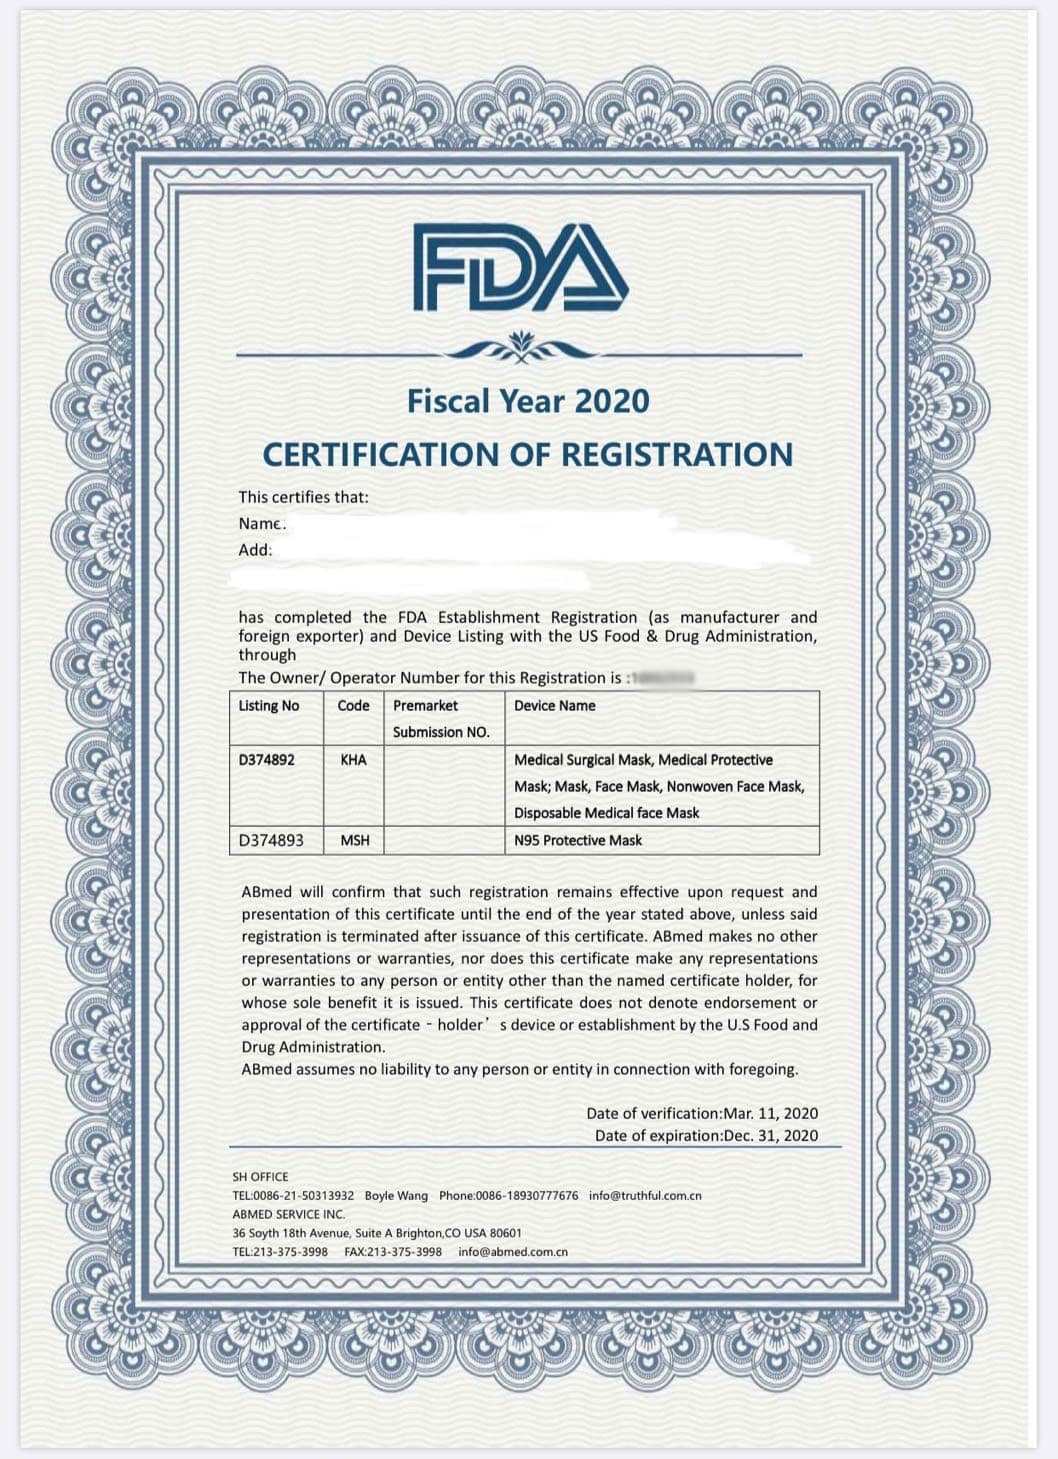 Certificate for face mask